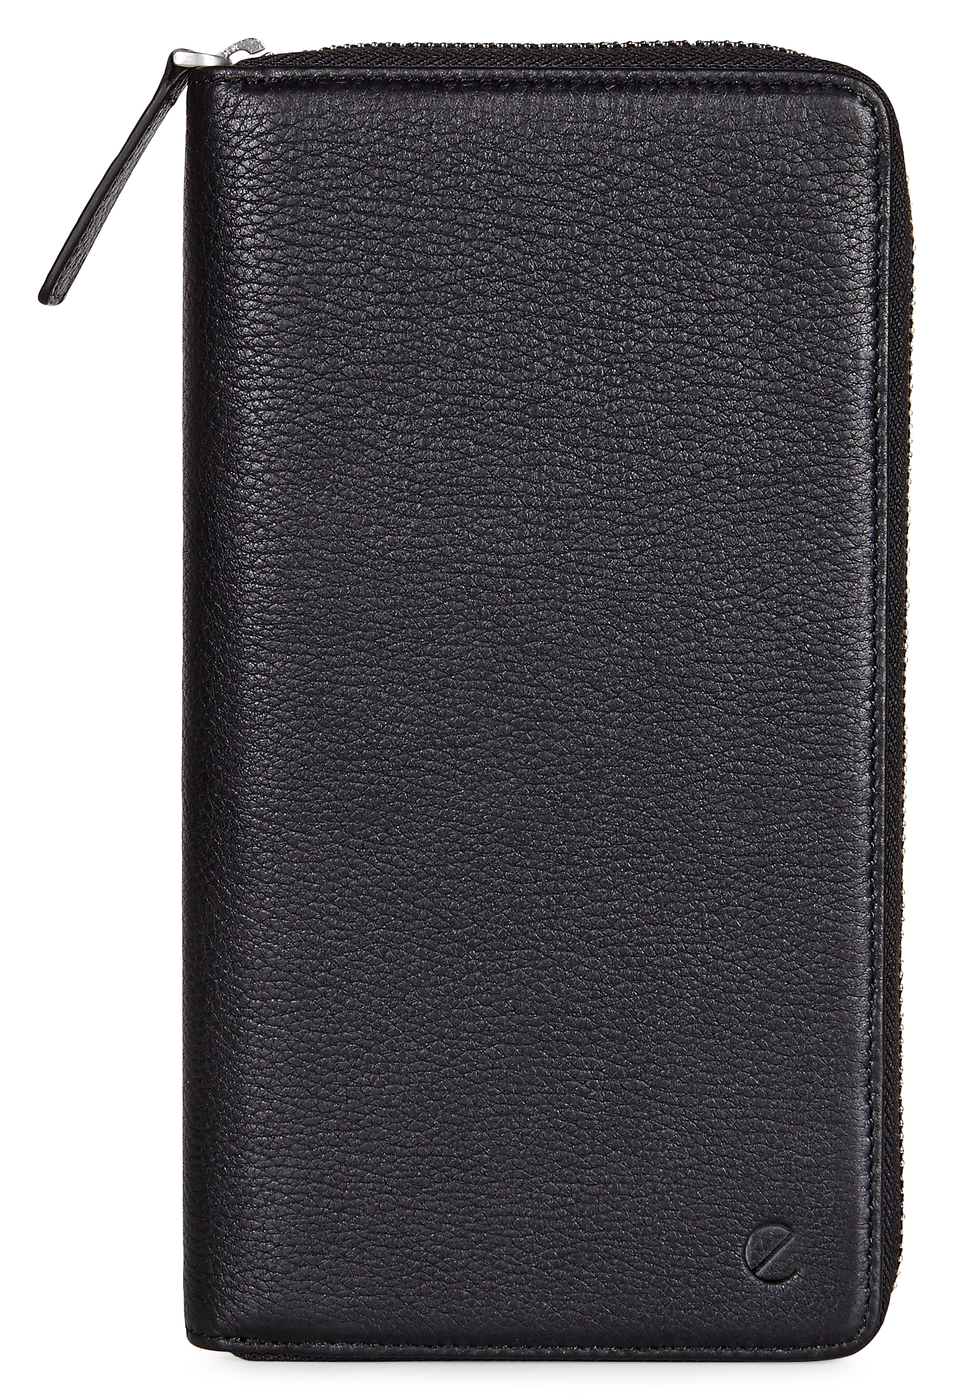 ECCO Jos Travel Wallet